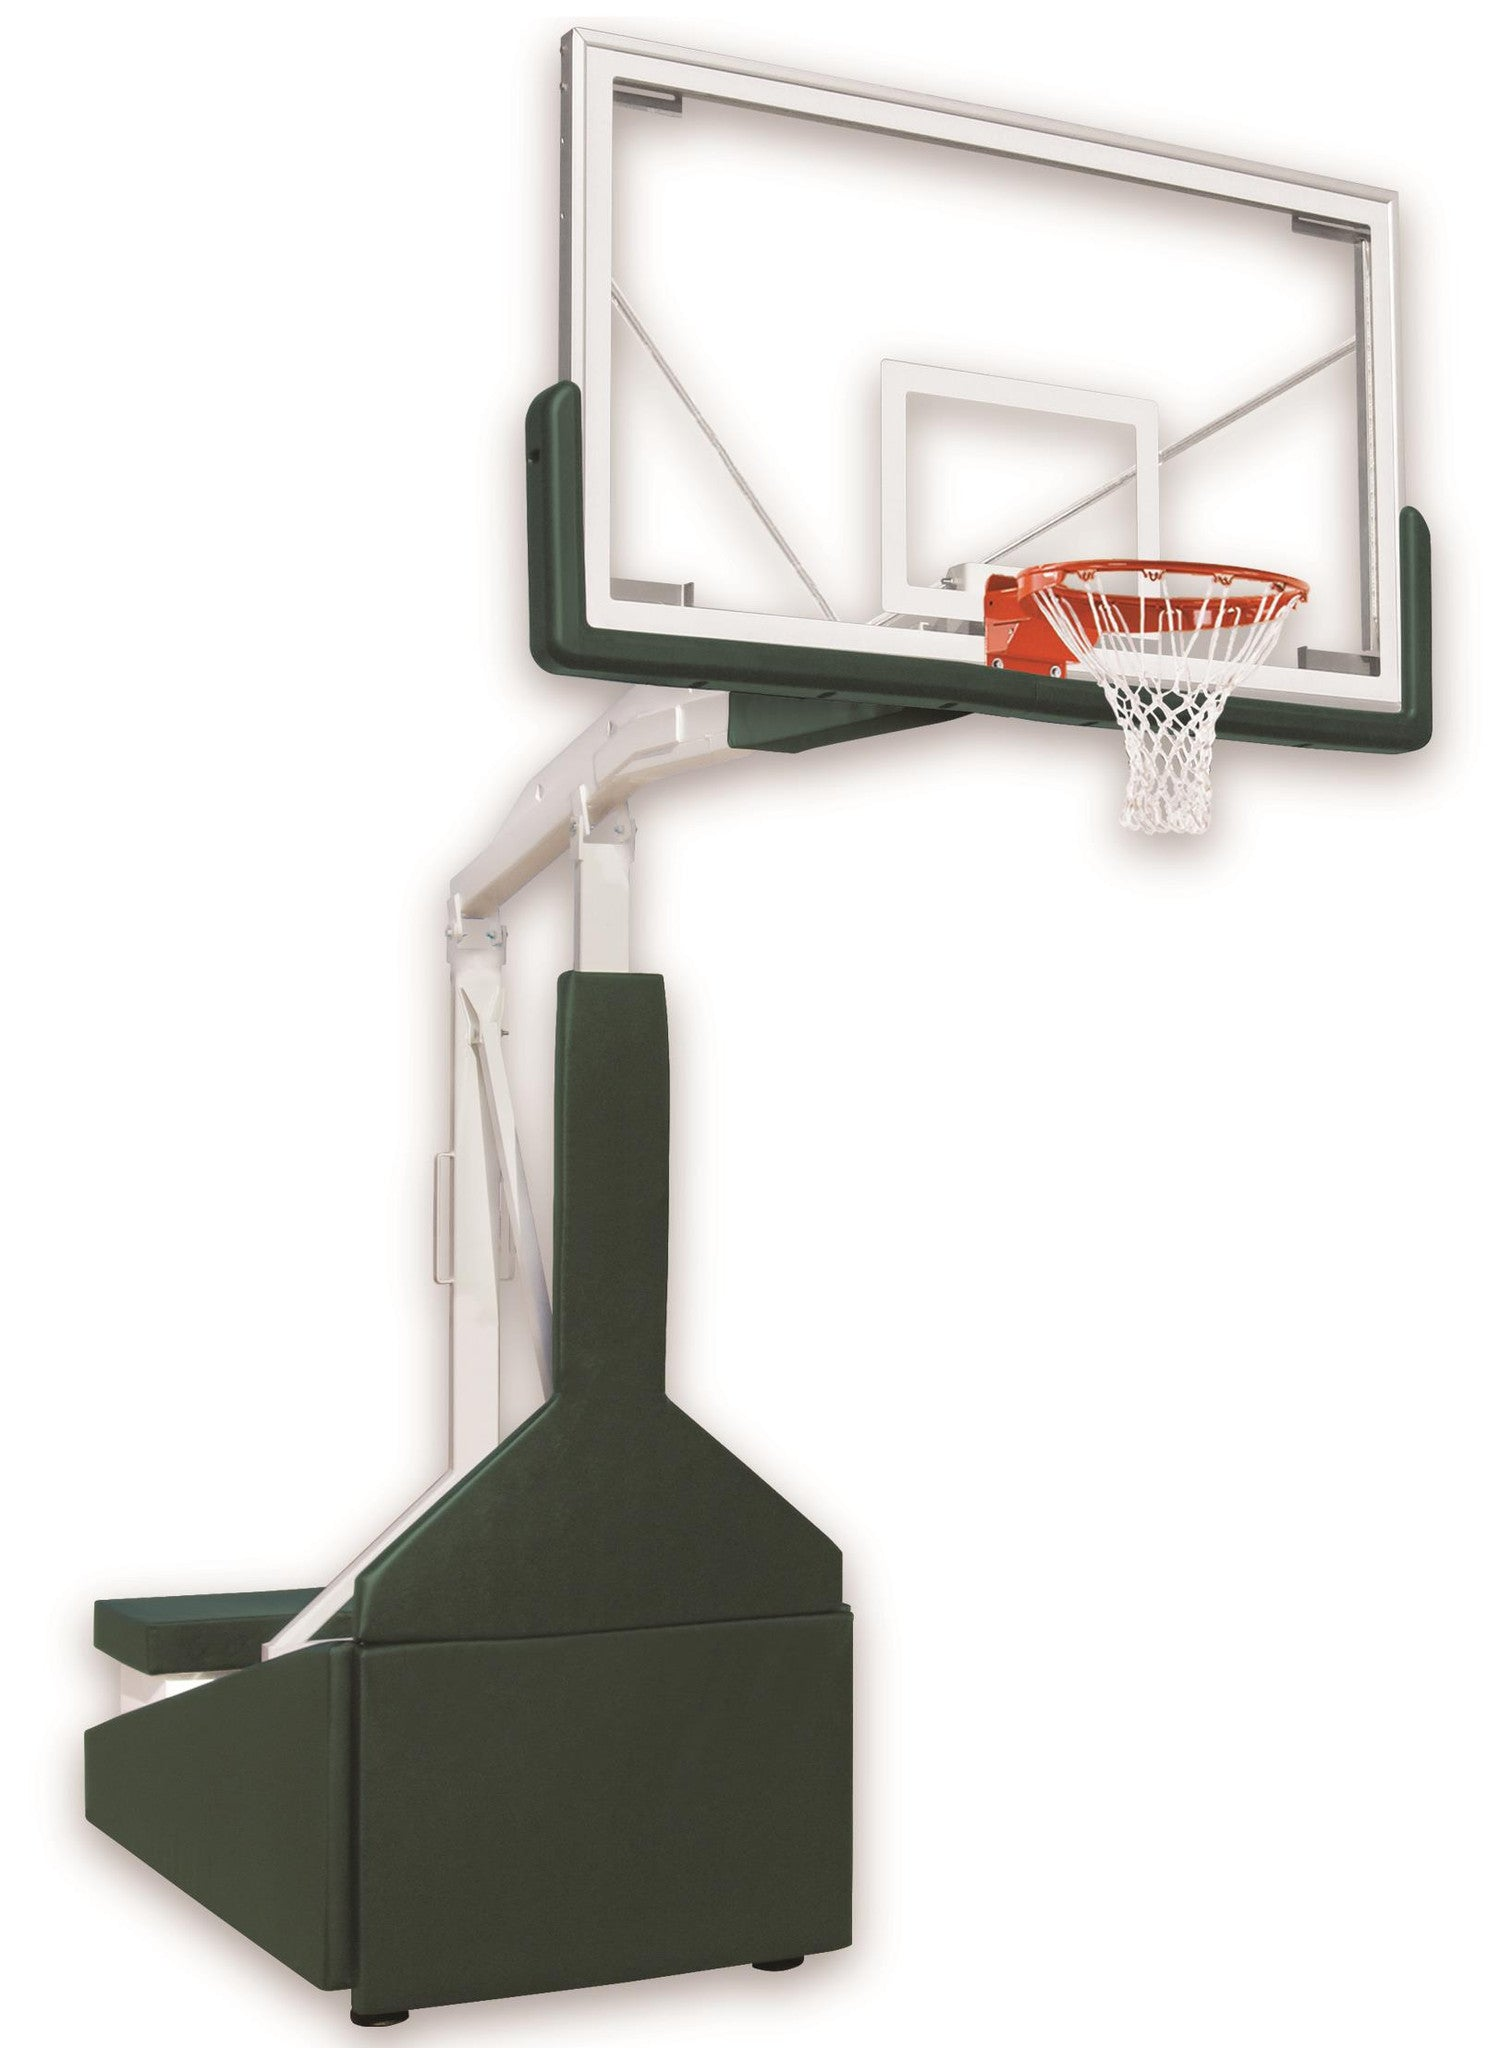 First Team Tempest Triumph FL Portable Adjustable Basketball Hoop 72 inch Tempered Glass for Floating Floors